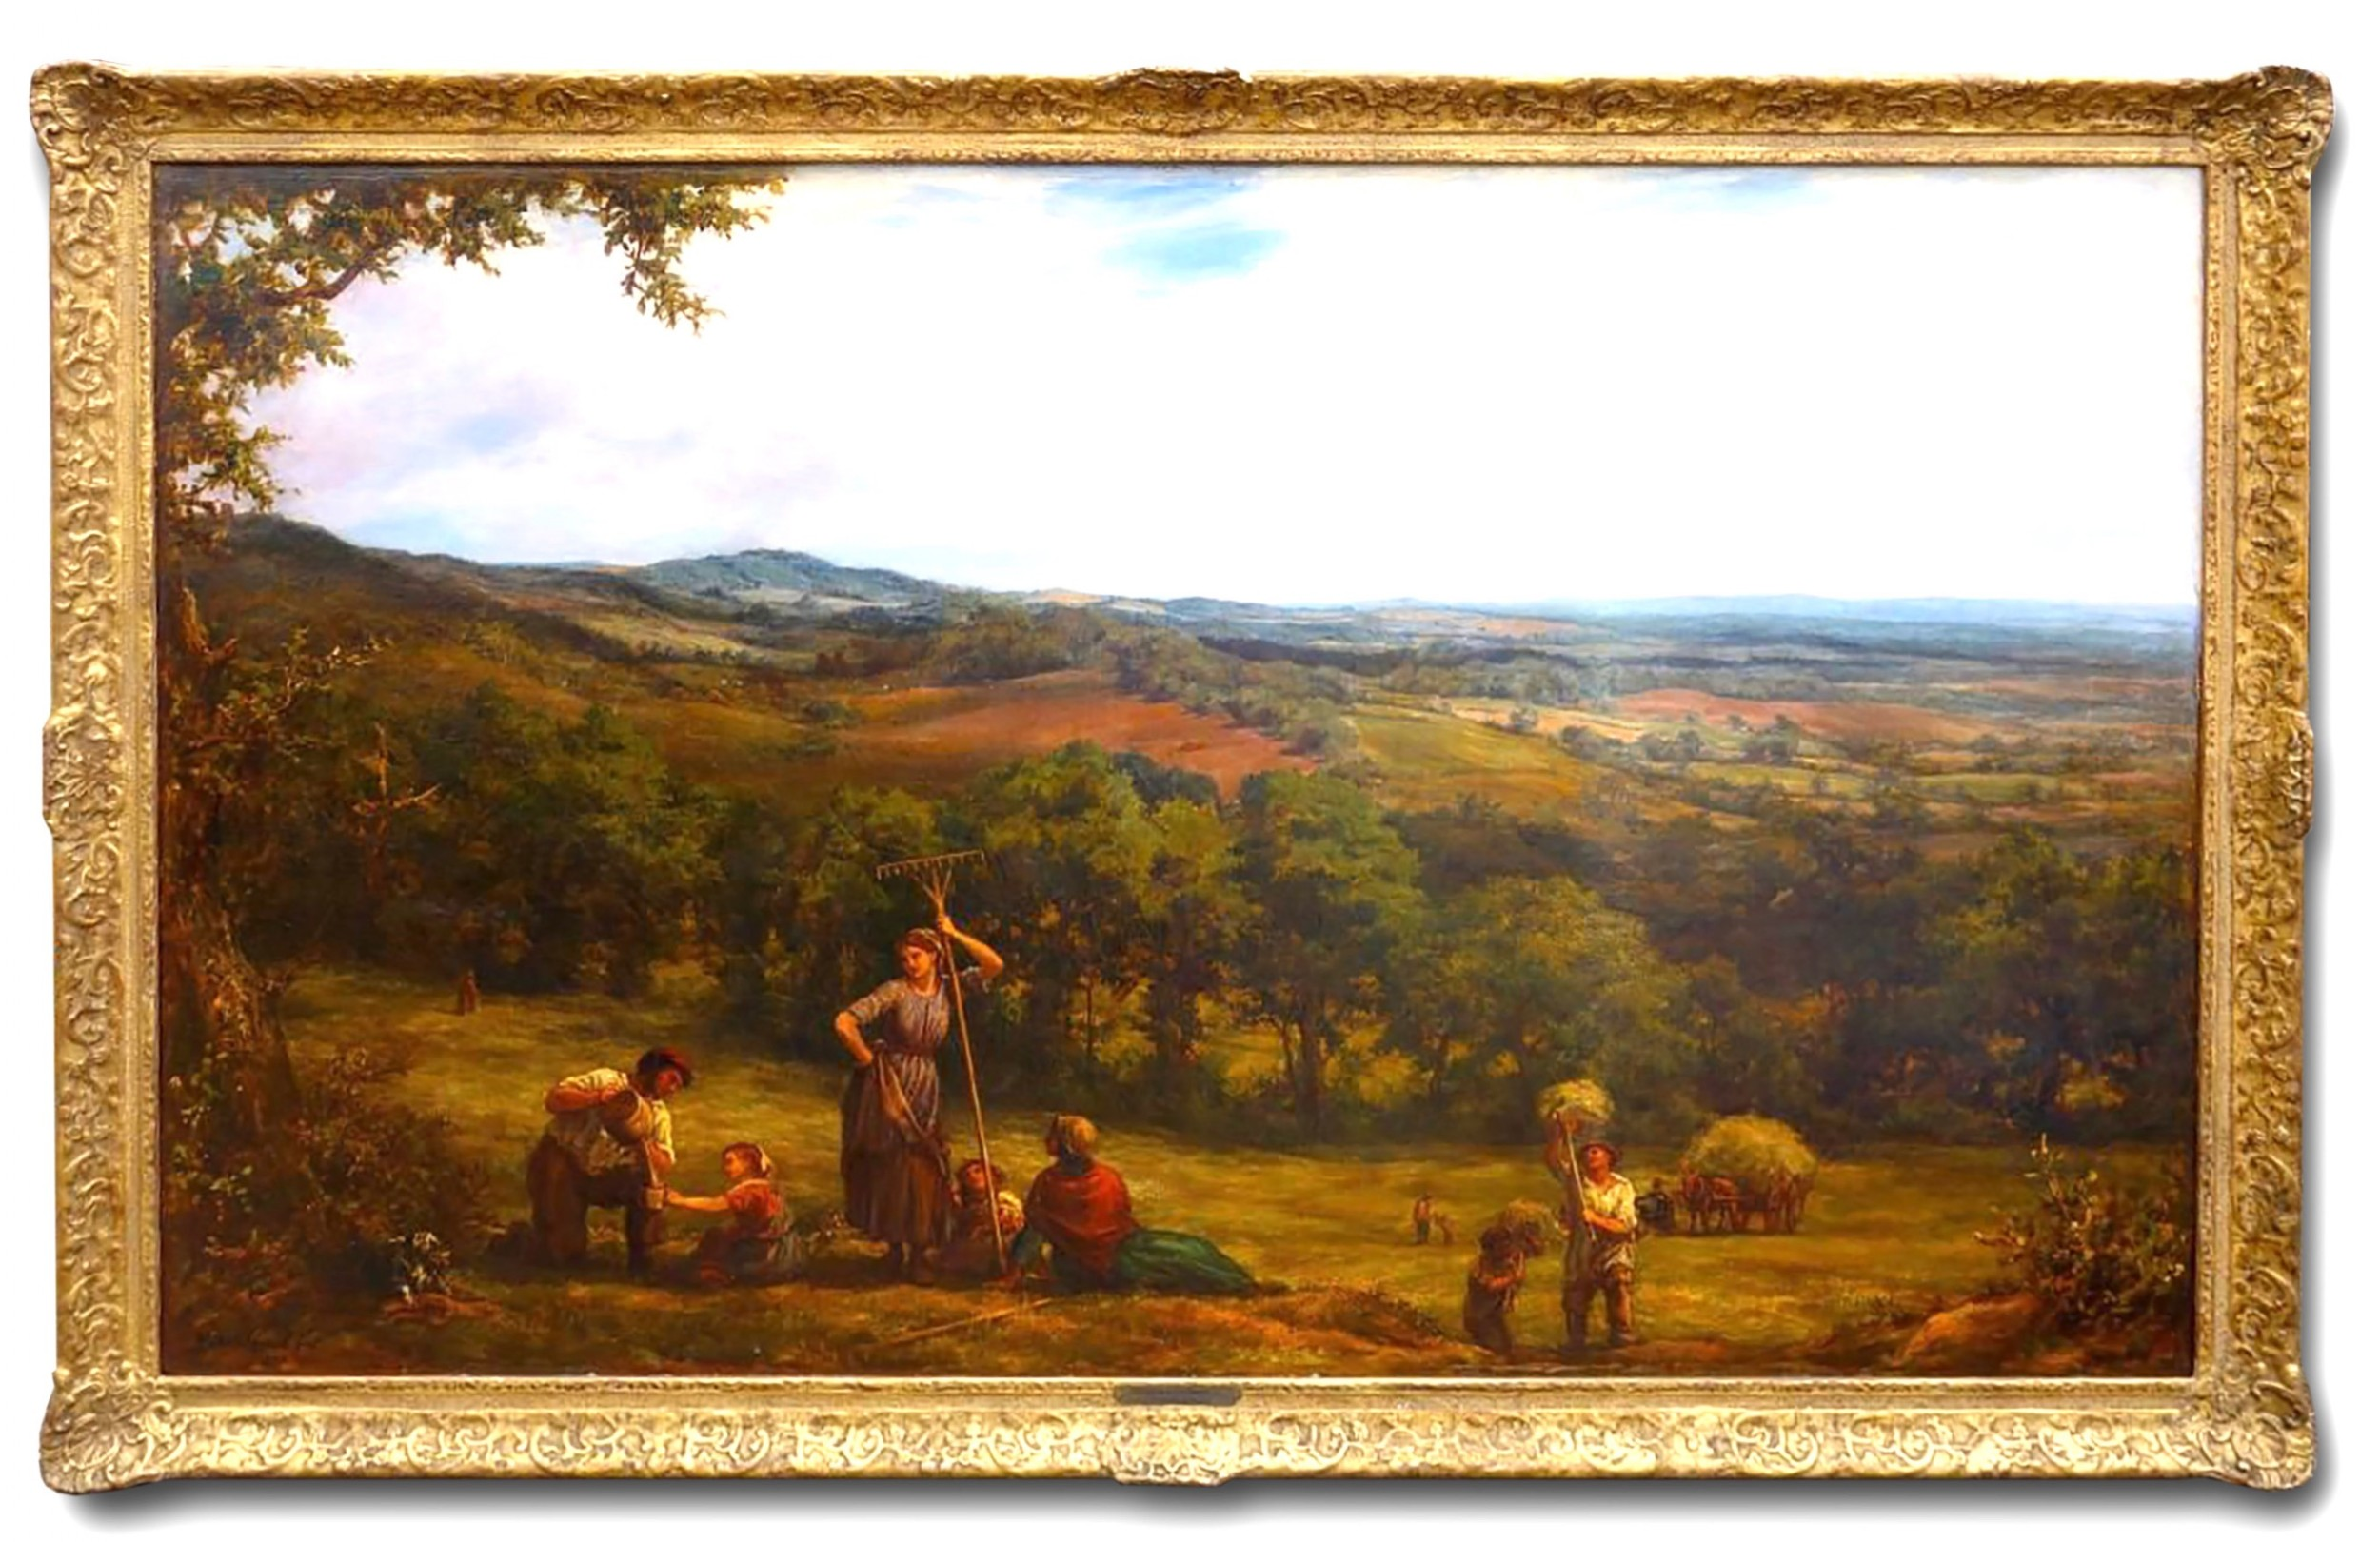 large 19th century landscape 'harvesting' by linnell england c 1877